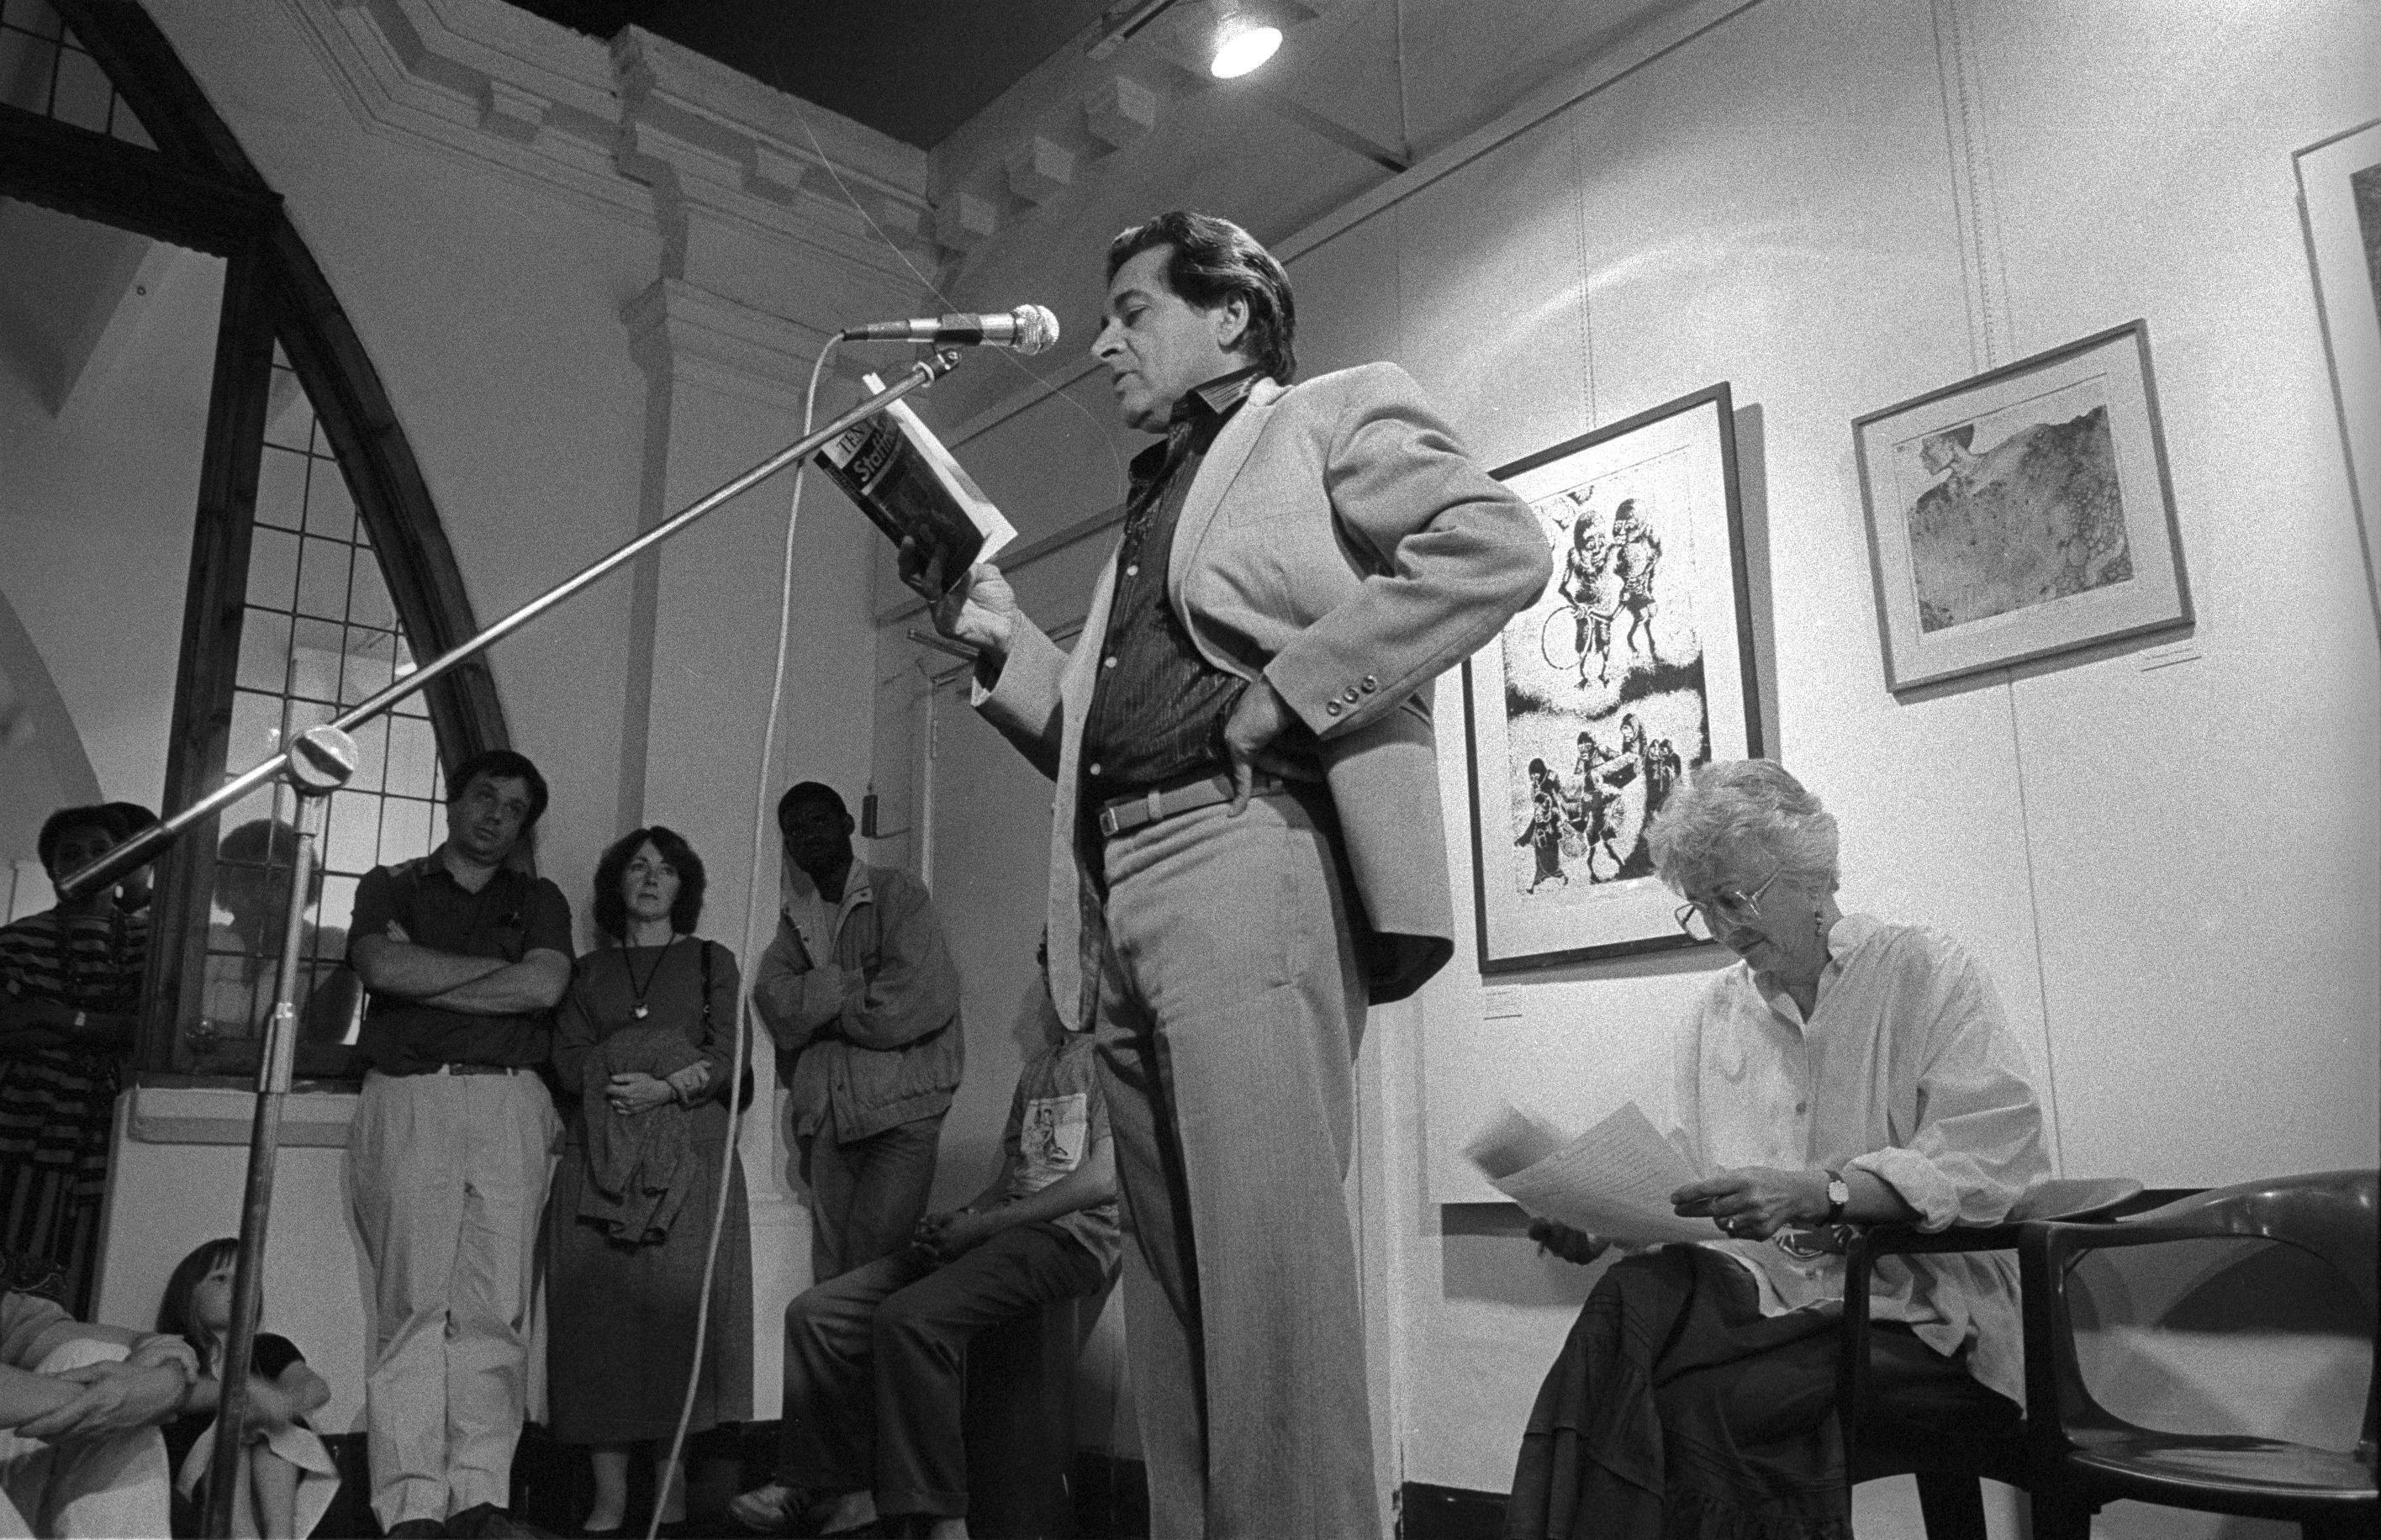 Writer Ahmed Essop speaking at Market Photo Gallery - 10 years of Staffrider exhibition and book launch 1988. © Omar Badsha